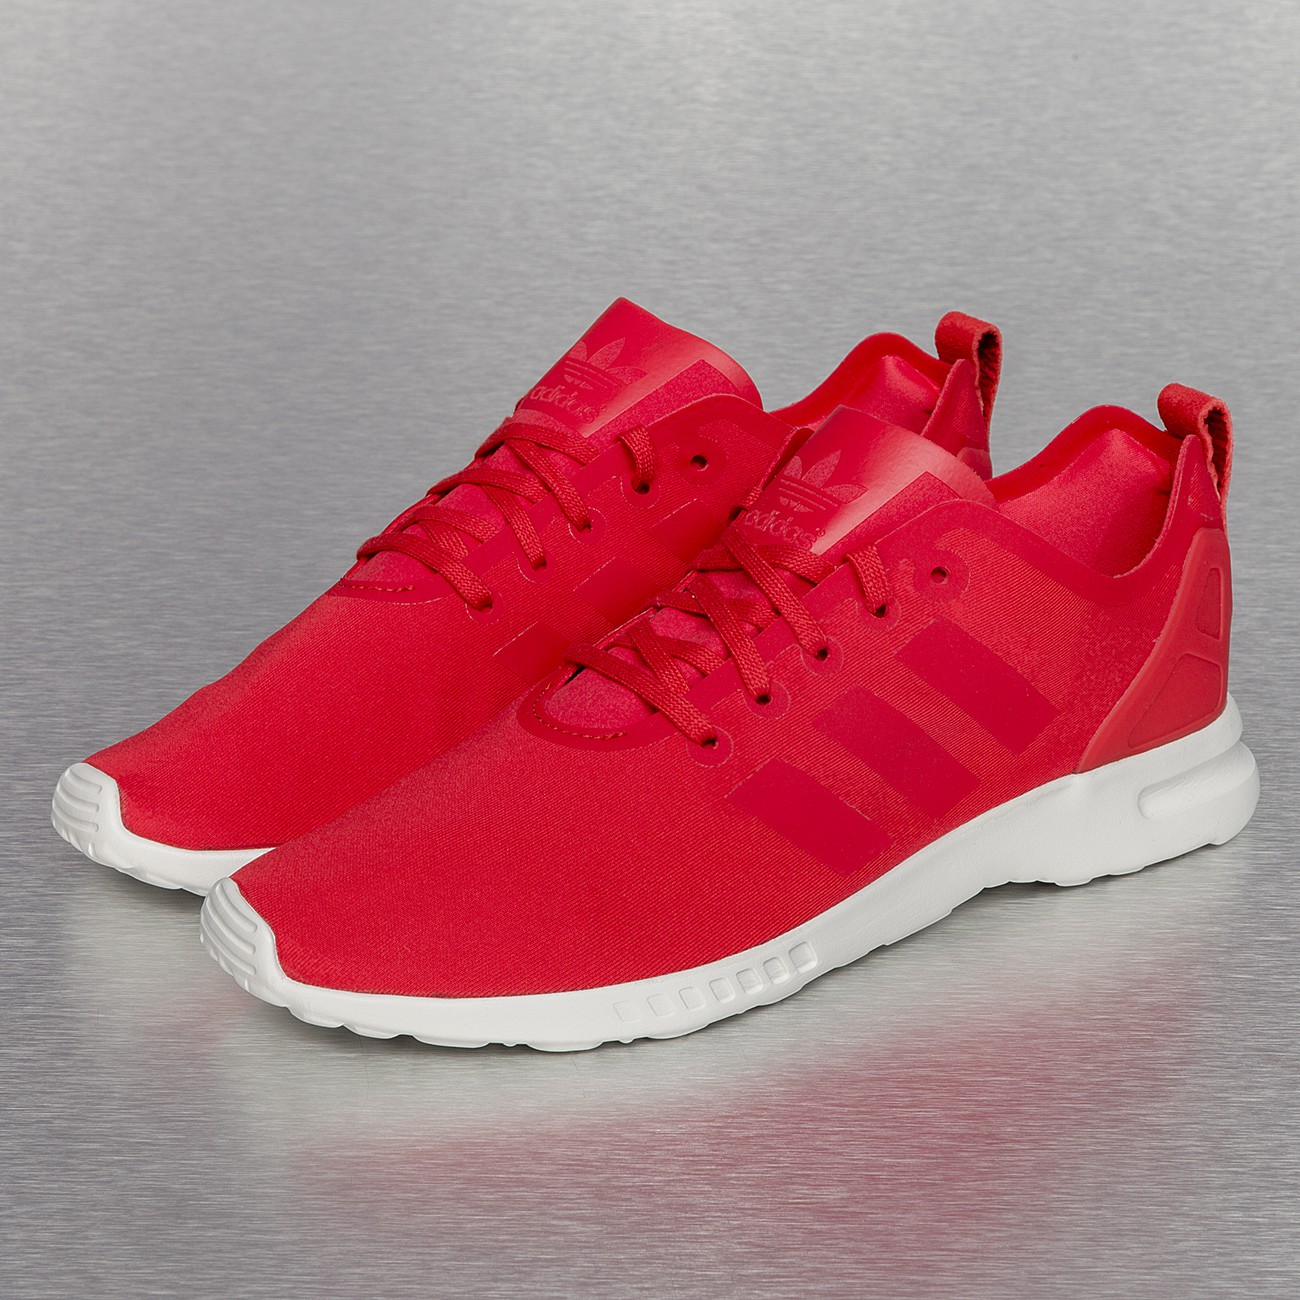 5f776780fb8 adidas zx flux bordeaux rood